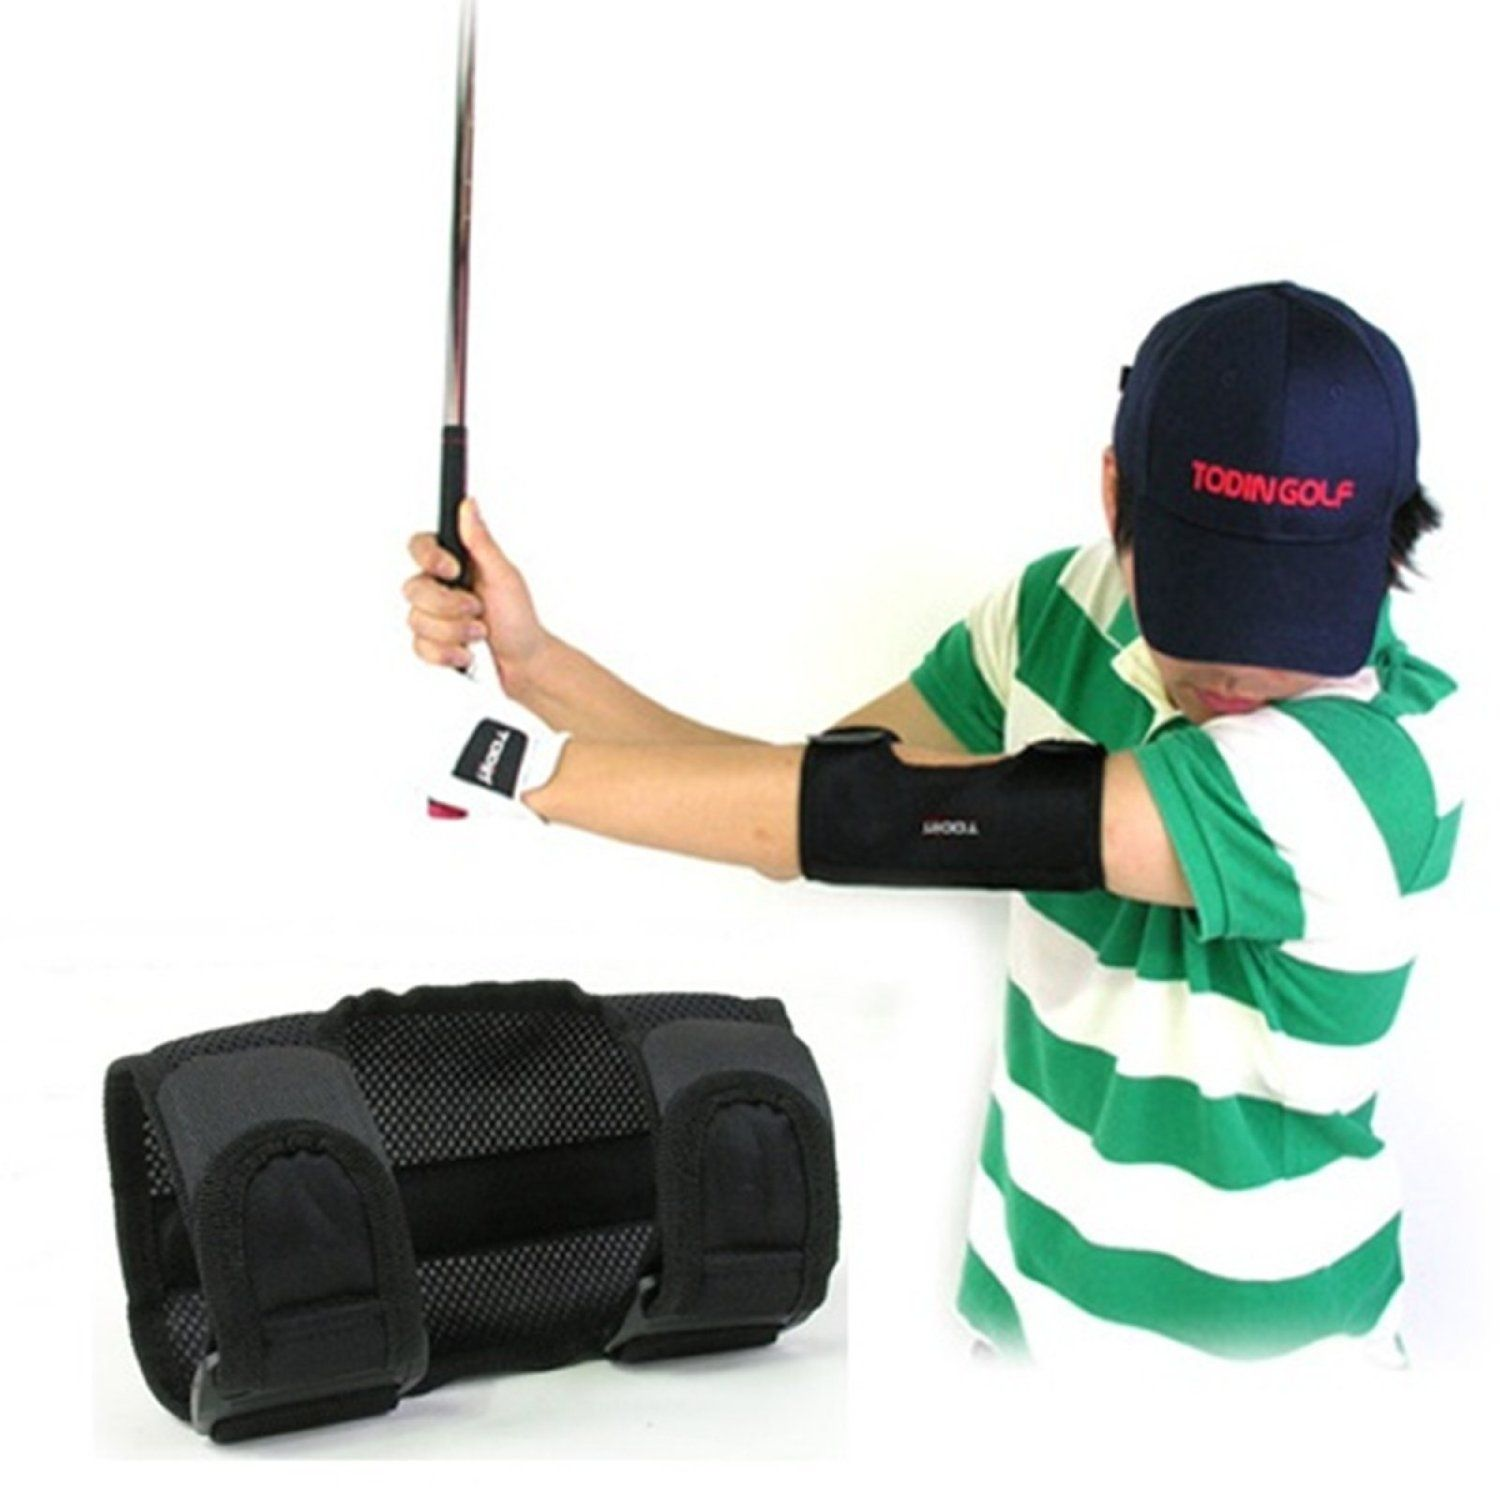 buy improve aid training golf home swing vps explanar with complete rollers two aids an your today